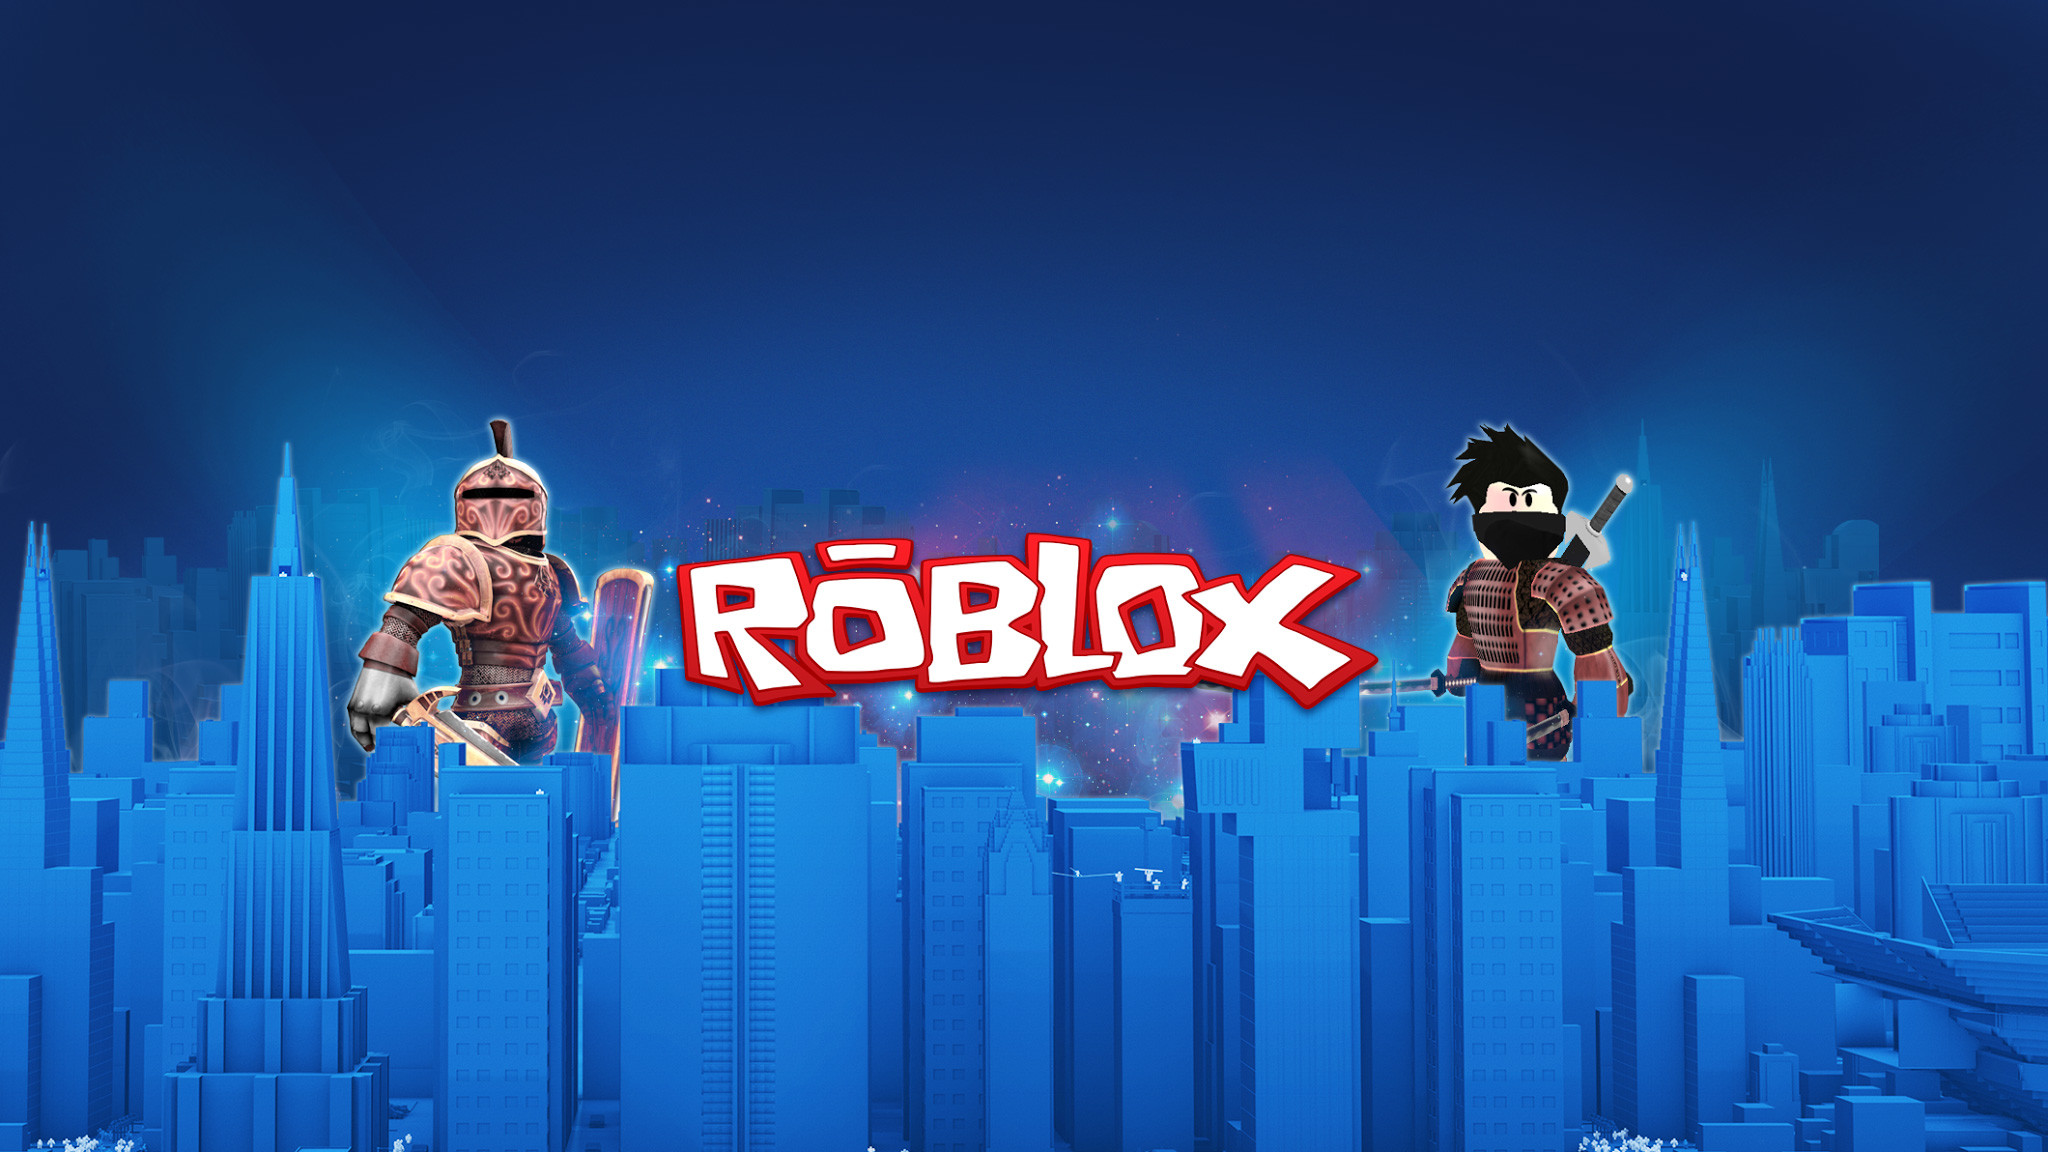 Roblox wallpapers 84 images - Love wallpaper 2048x1152 ...